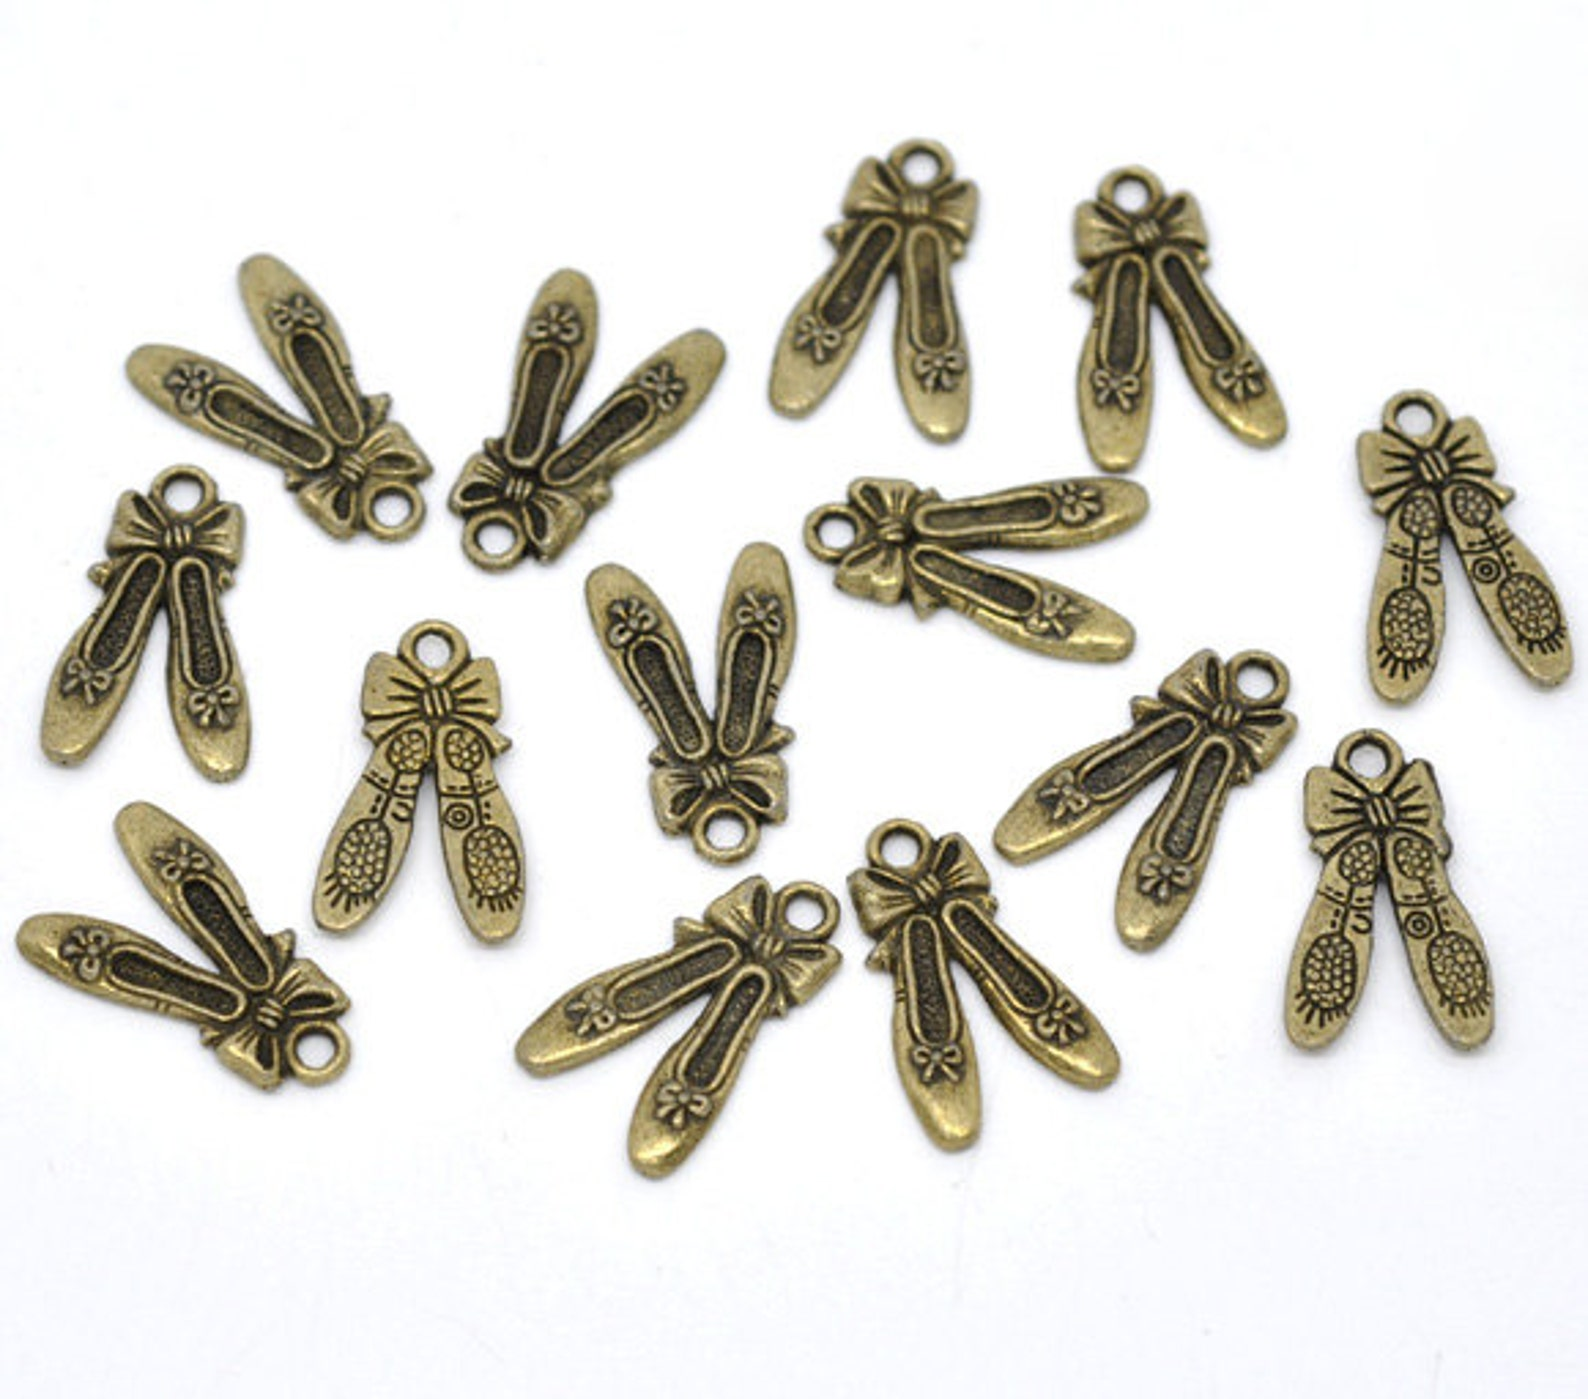 5 pieces antique bronze ballet shoes charms